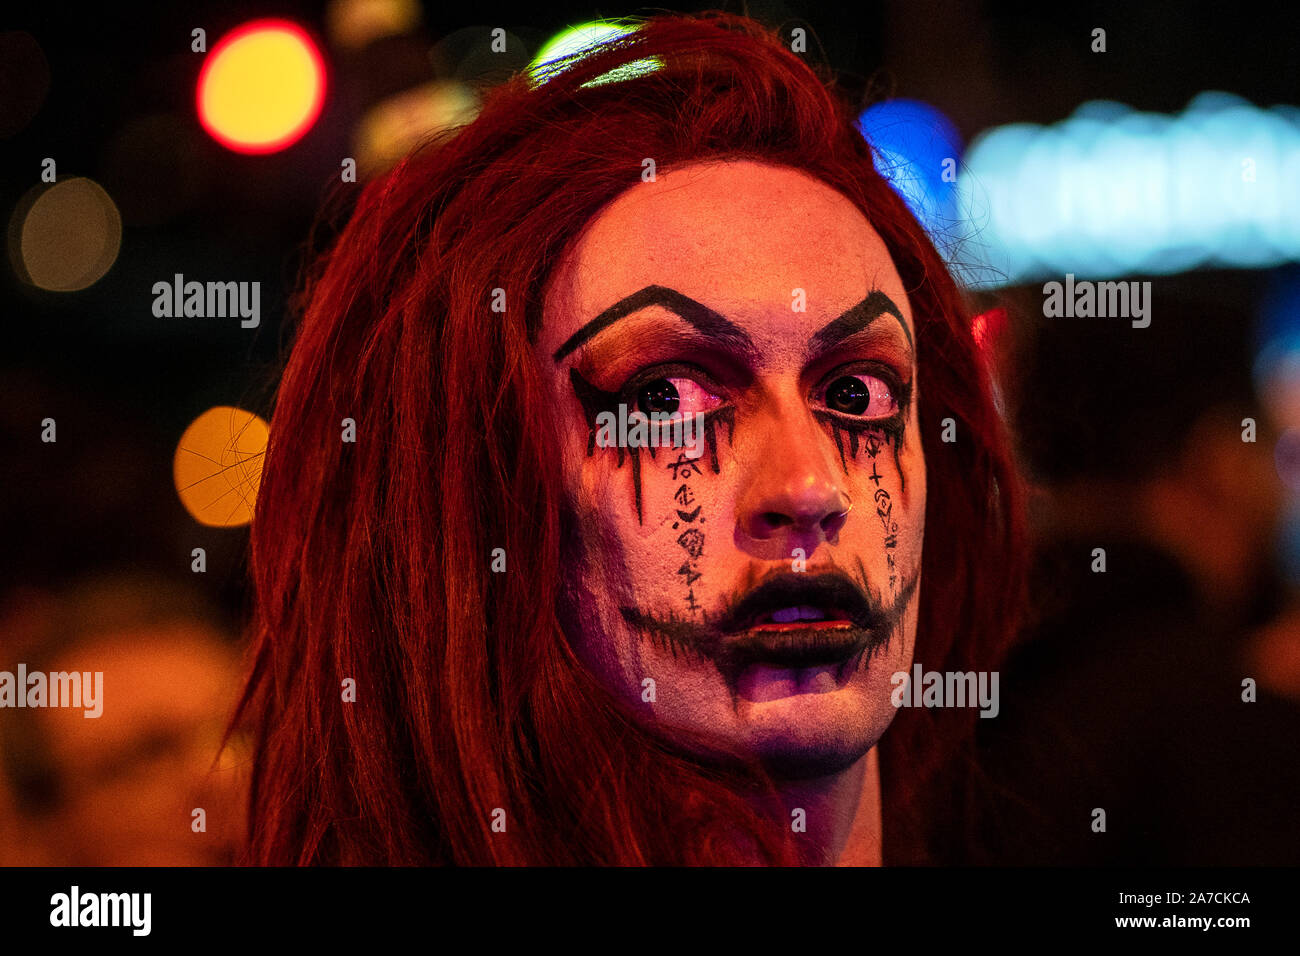 Los Angeles, United States. 31st Oct, 2019. An attendee dressed in a costume attends the Halloween Carnival in West Hollywood, California.The event takes place along the world-famous Santa Monica Boulevard and is known as the world's largest Halloween party and attracts an estimated 500,000 people. Credit: SOPA Images Limited/Alamy Live News Stock Photo